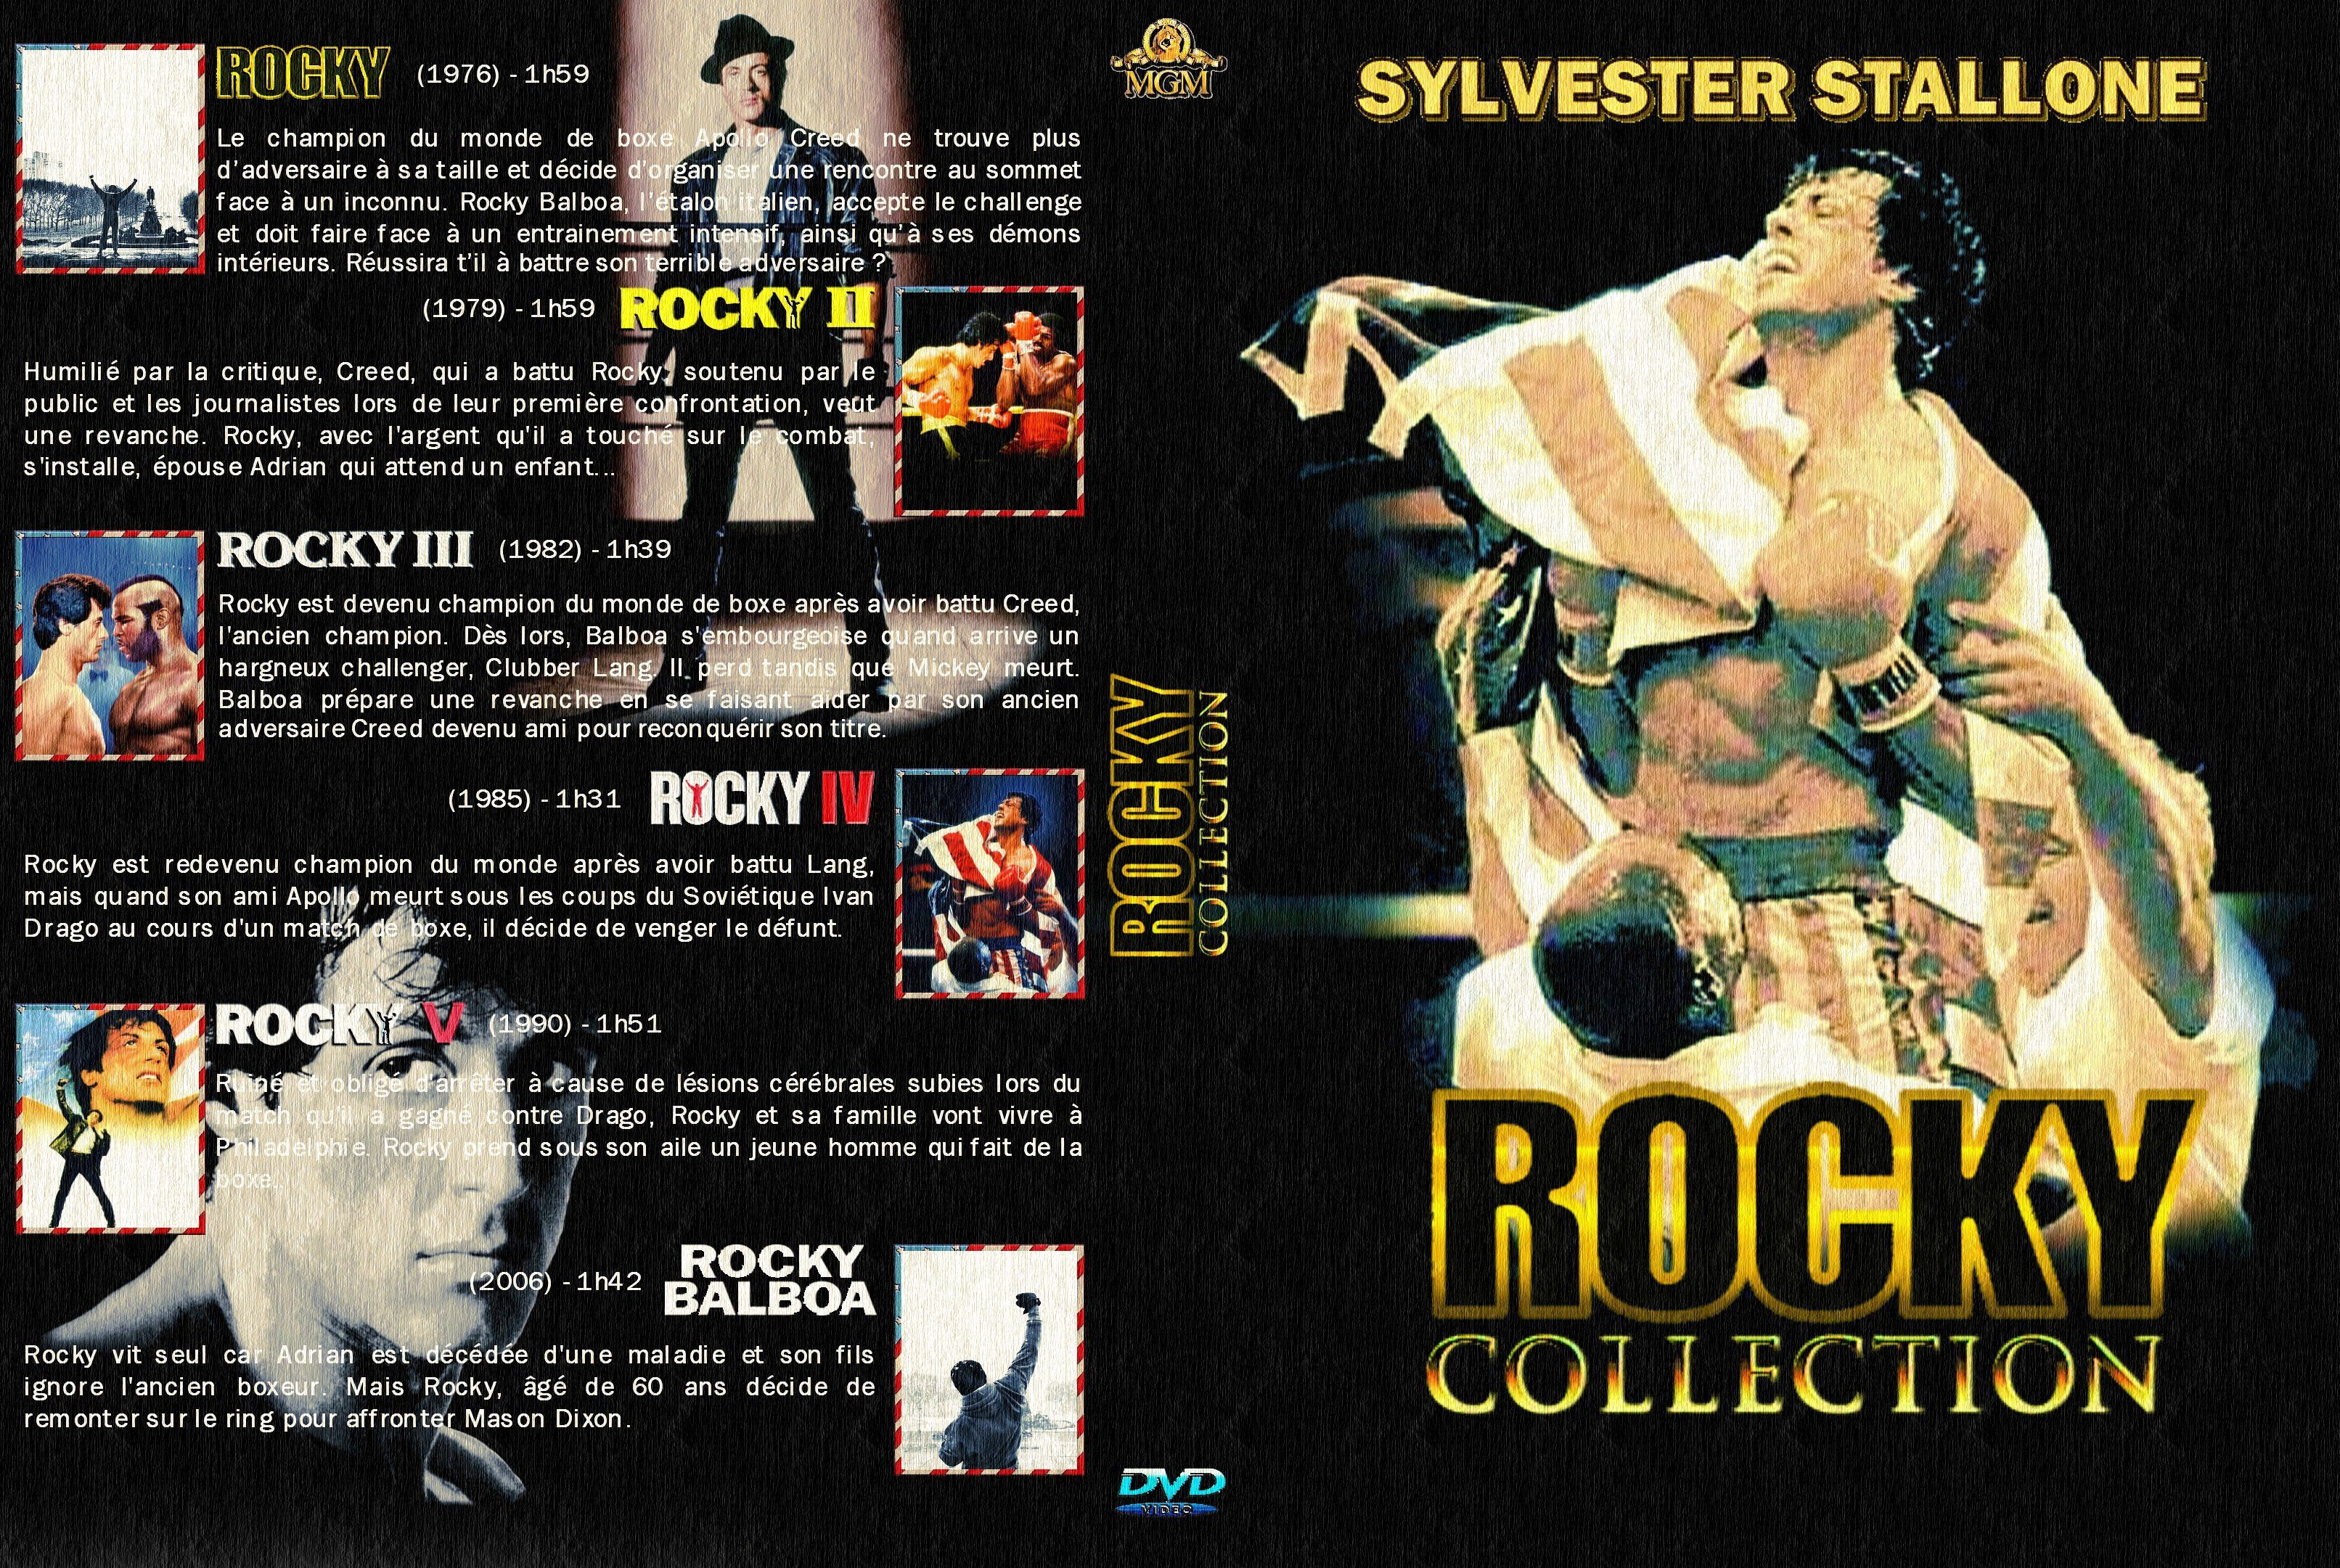 Rocky Collection Jaquette Dvd Les Critiques Jaquette